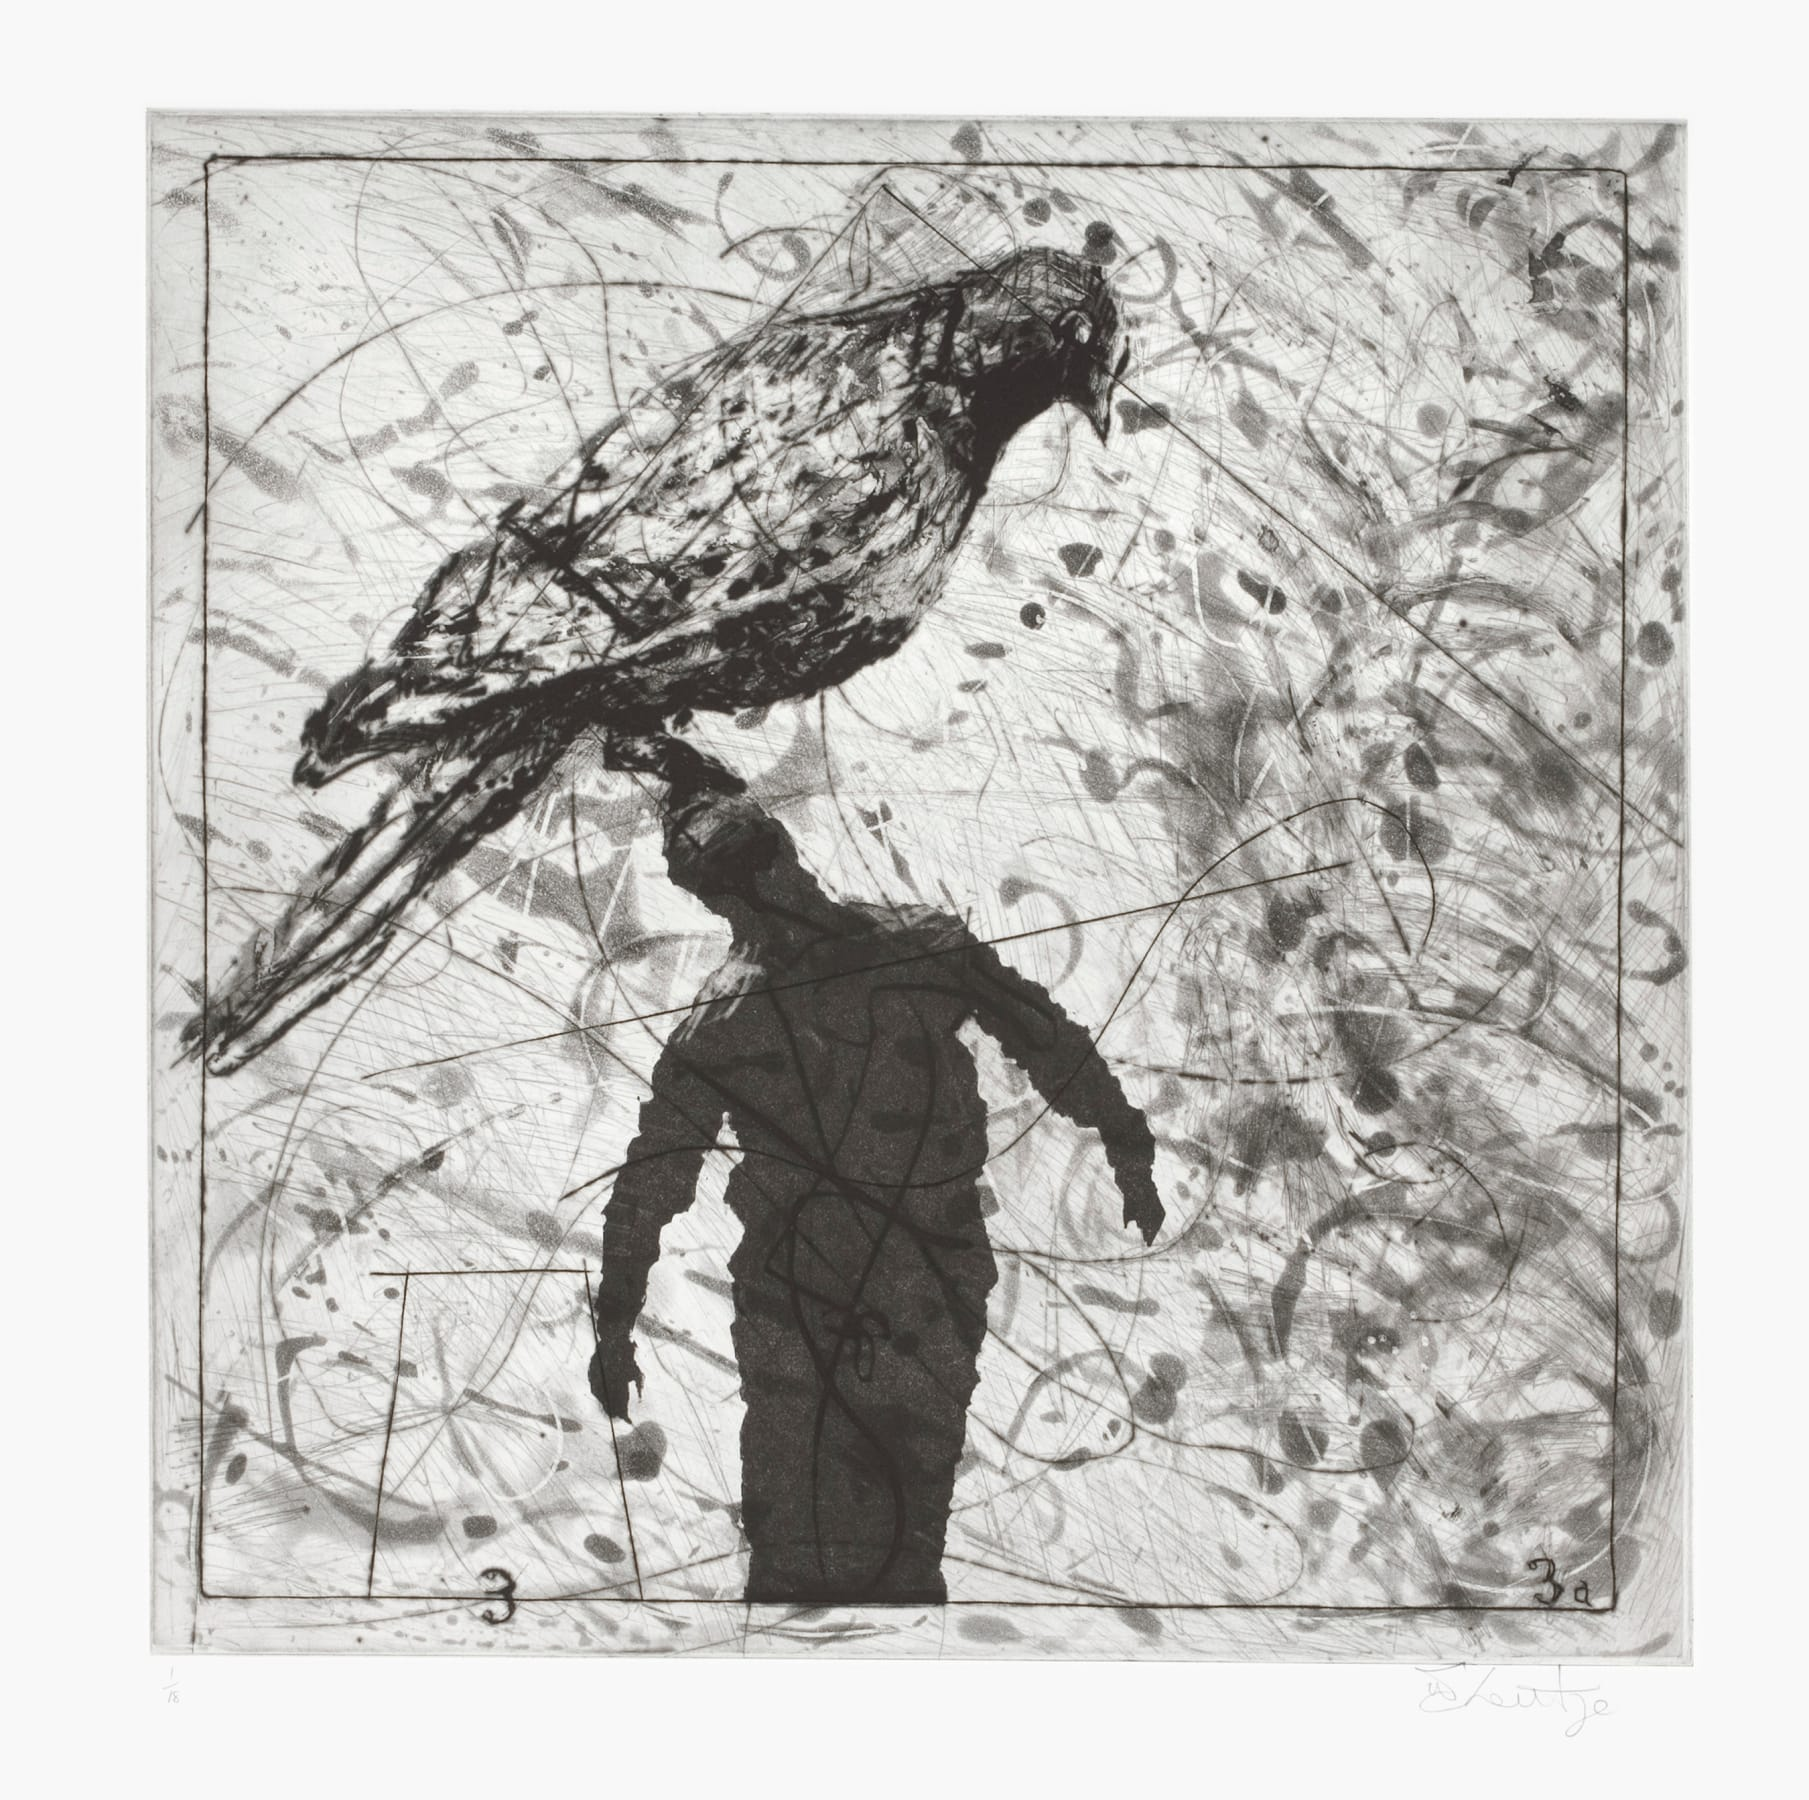 William Kentridge, Bird Catching, Set II, 2006